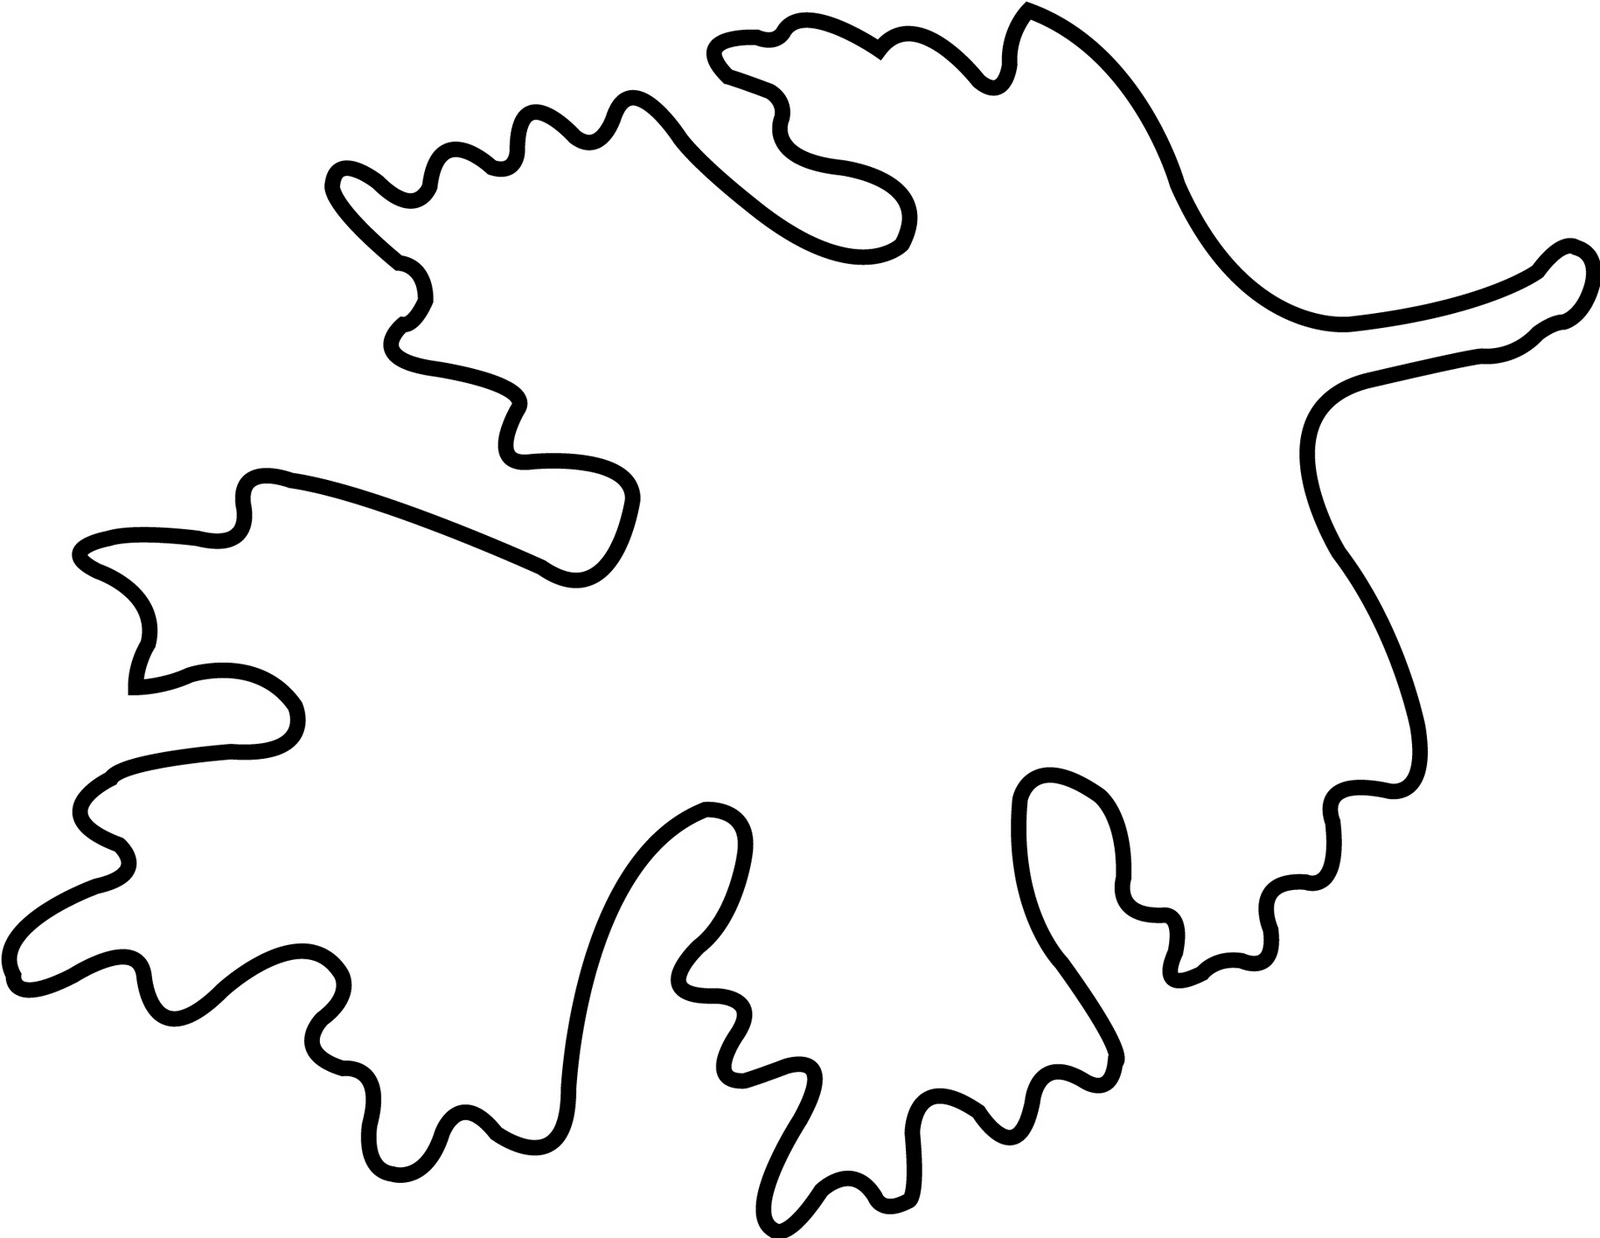 Christmas Coloring Pages Holly Leaves With Obsession Leaf Template To Cut Out Impressive Templates Popular